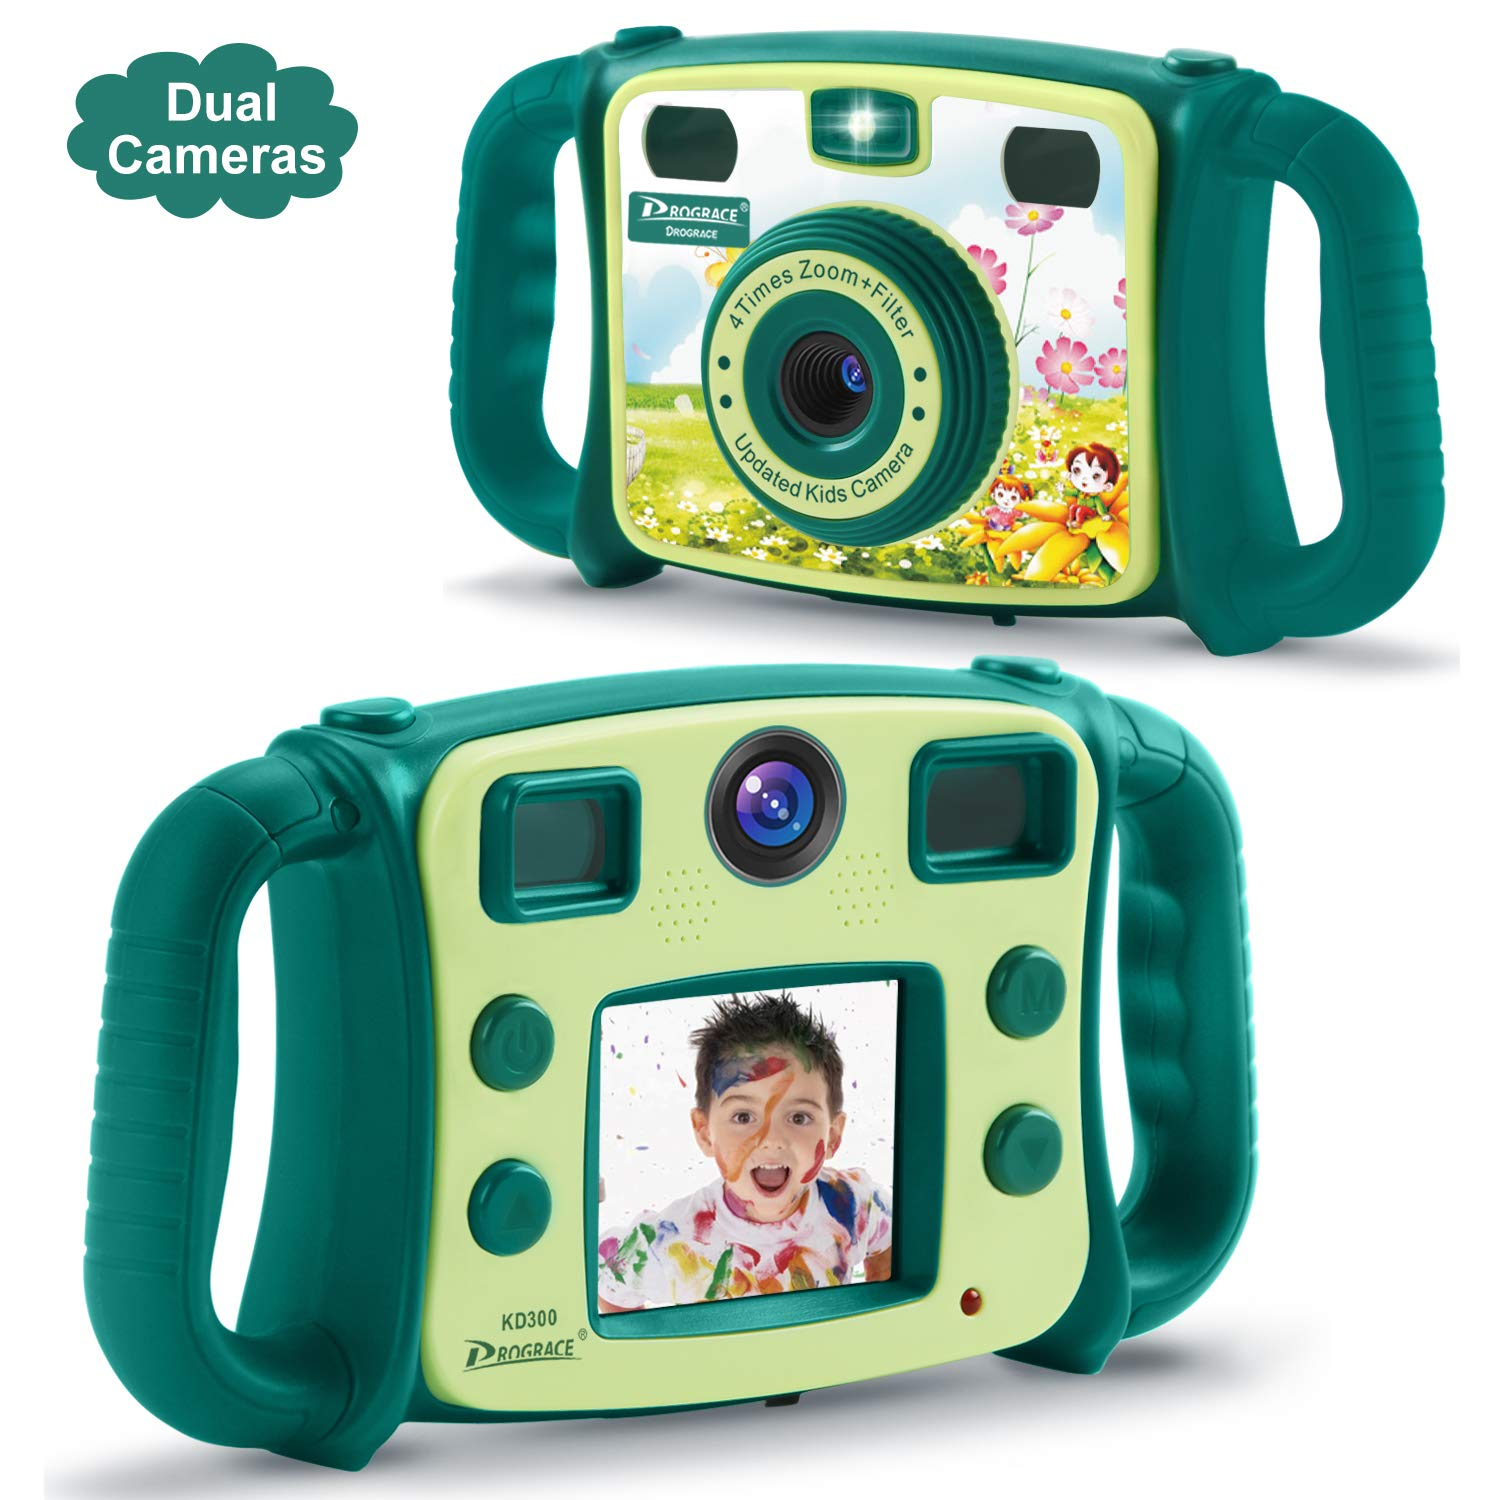 Prograce Kids Camera Dual Selfie Camera 1080P HD Video Recorder Digital Action Camera Camcorder for Boys Girls Gifts 2.0'' LCD Screen with 4X Digital Zoom and Funny Game(Green) by Prograce (Image #1)